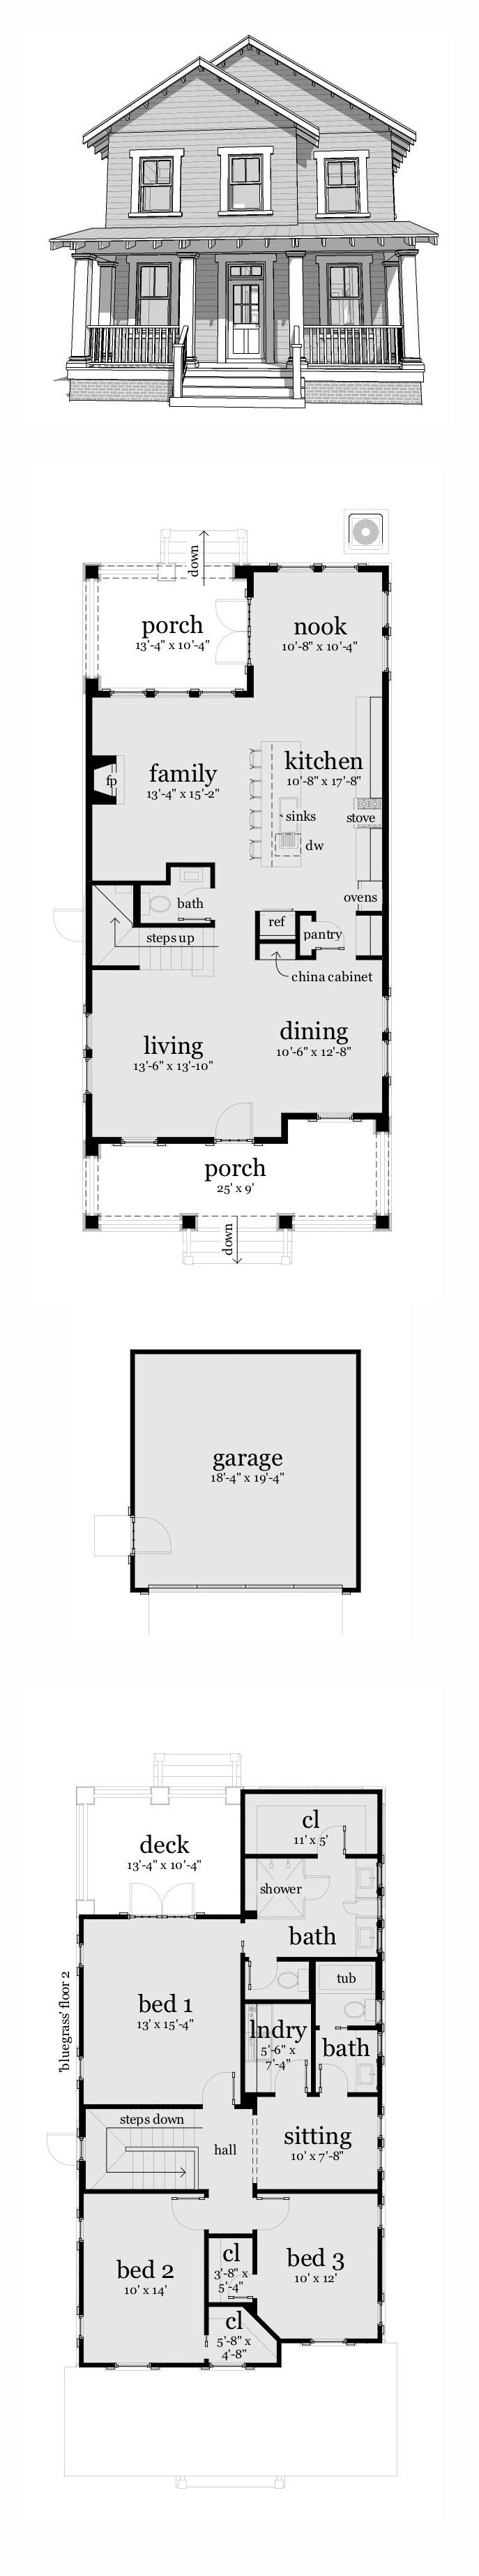 Best 25+ Narrow lot house plans ideas on Pinterest | Narrow house ...